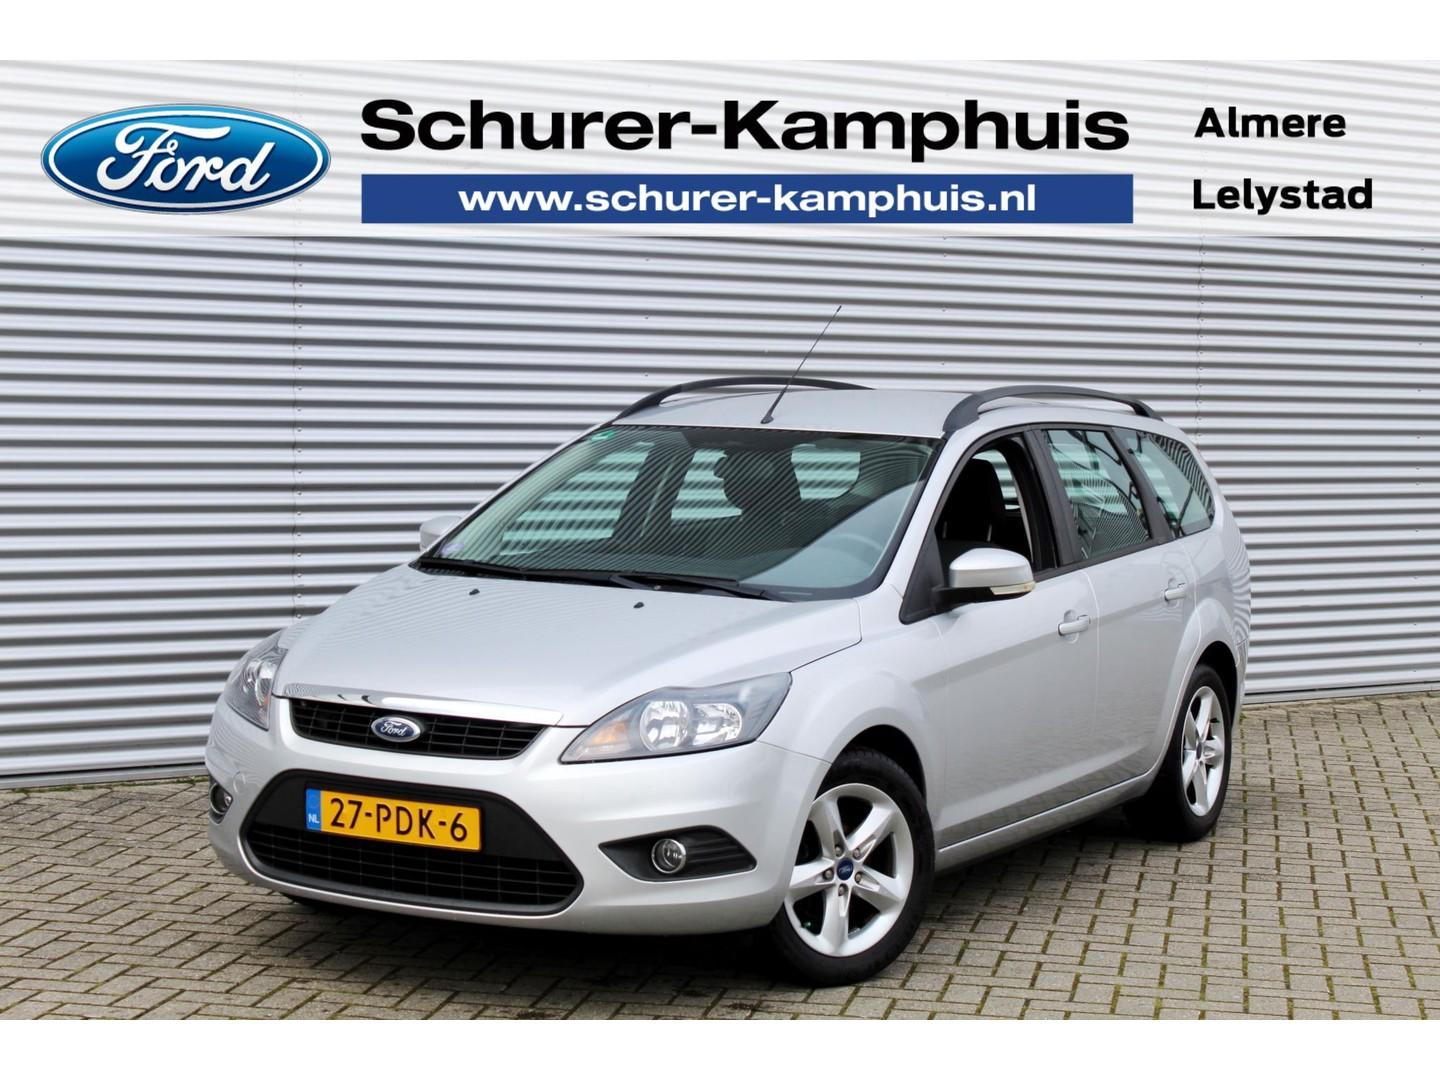 Ford Focus Wagon 1.6i 16v comfort style pack ii